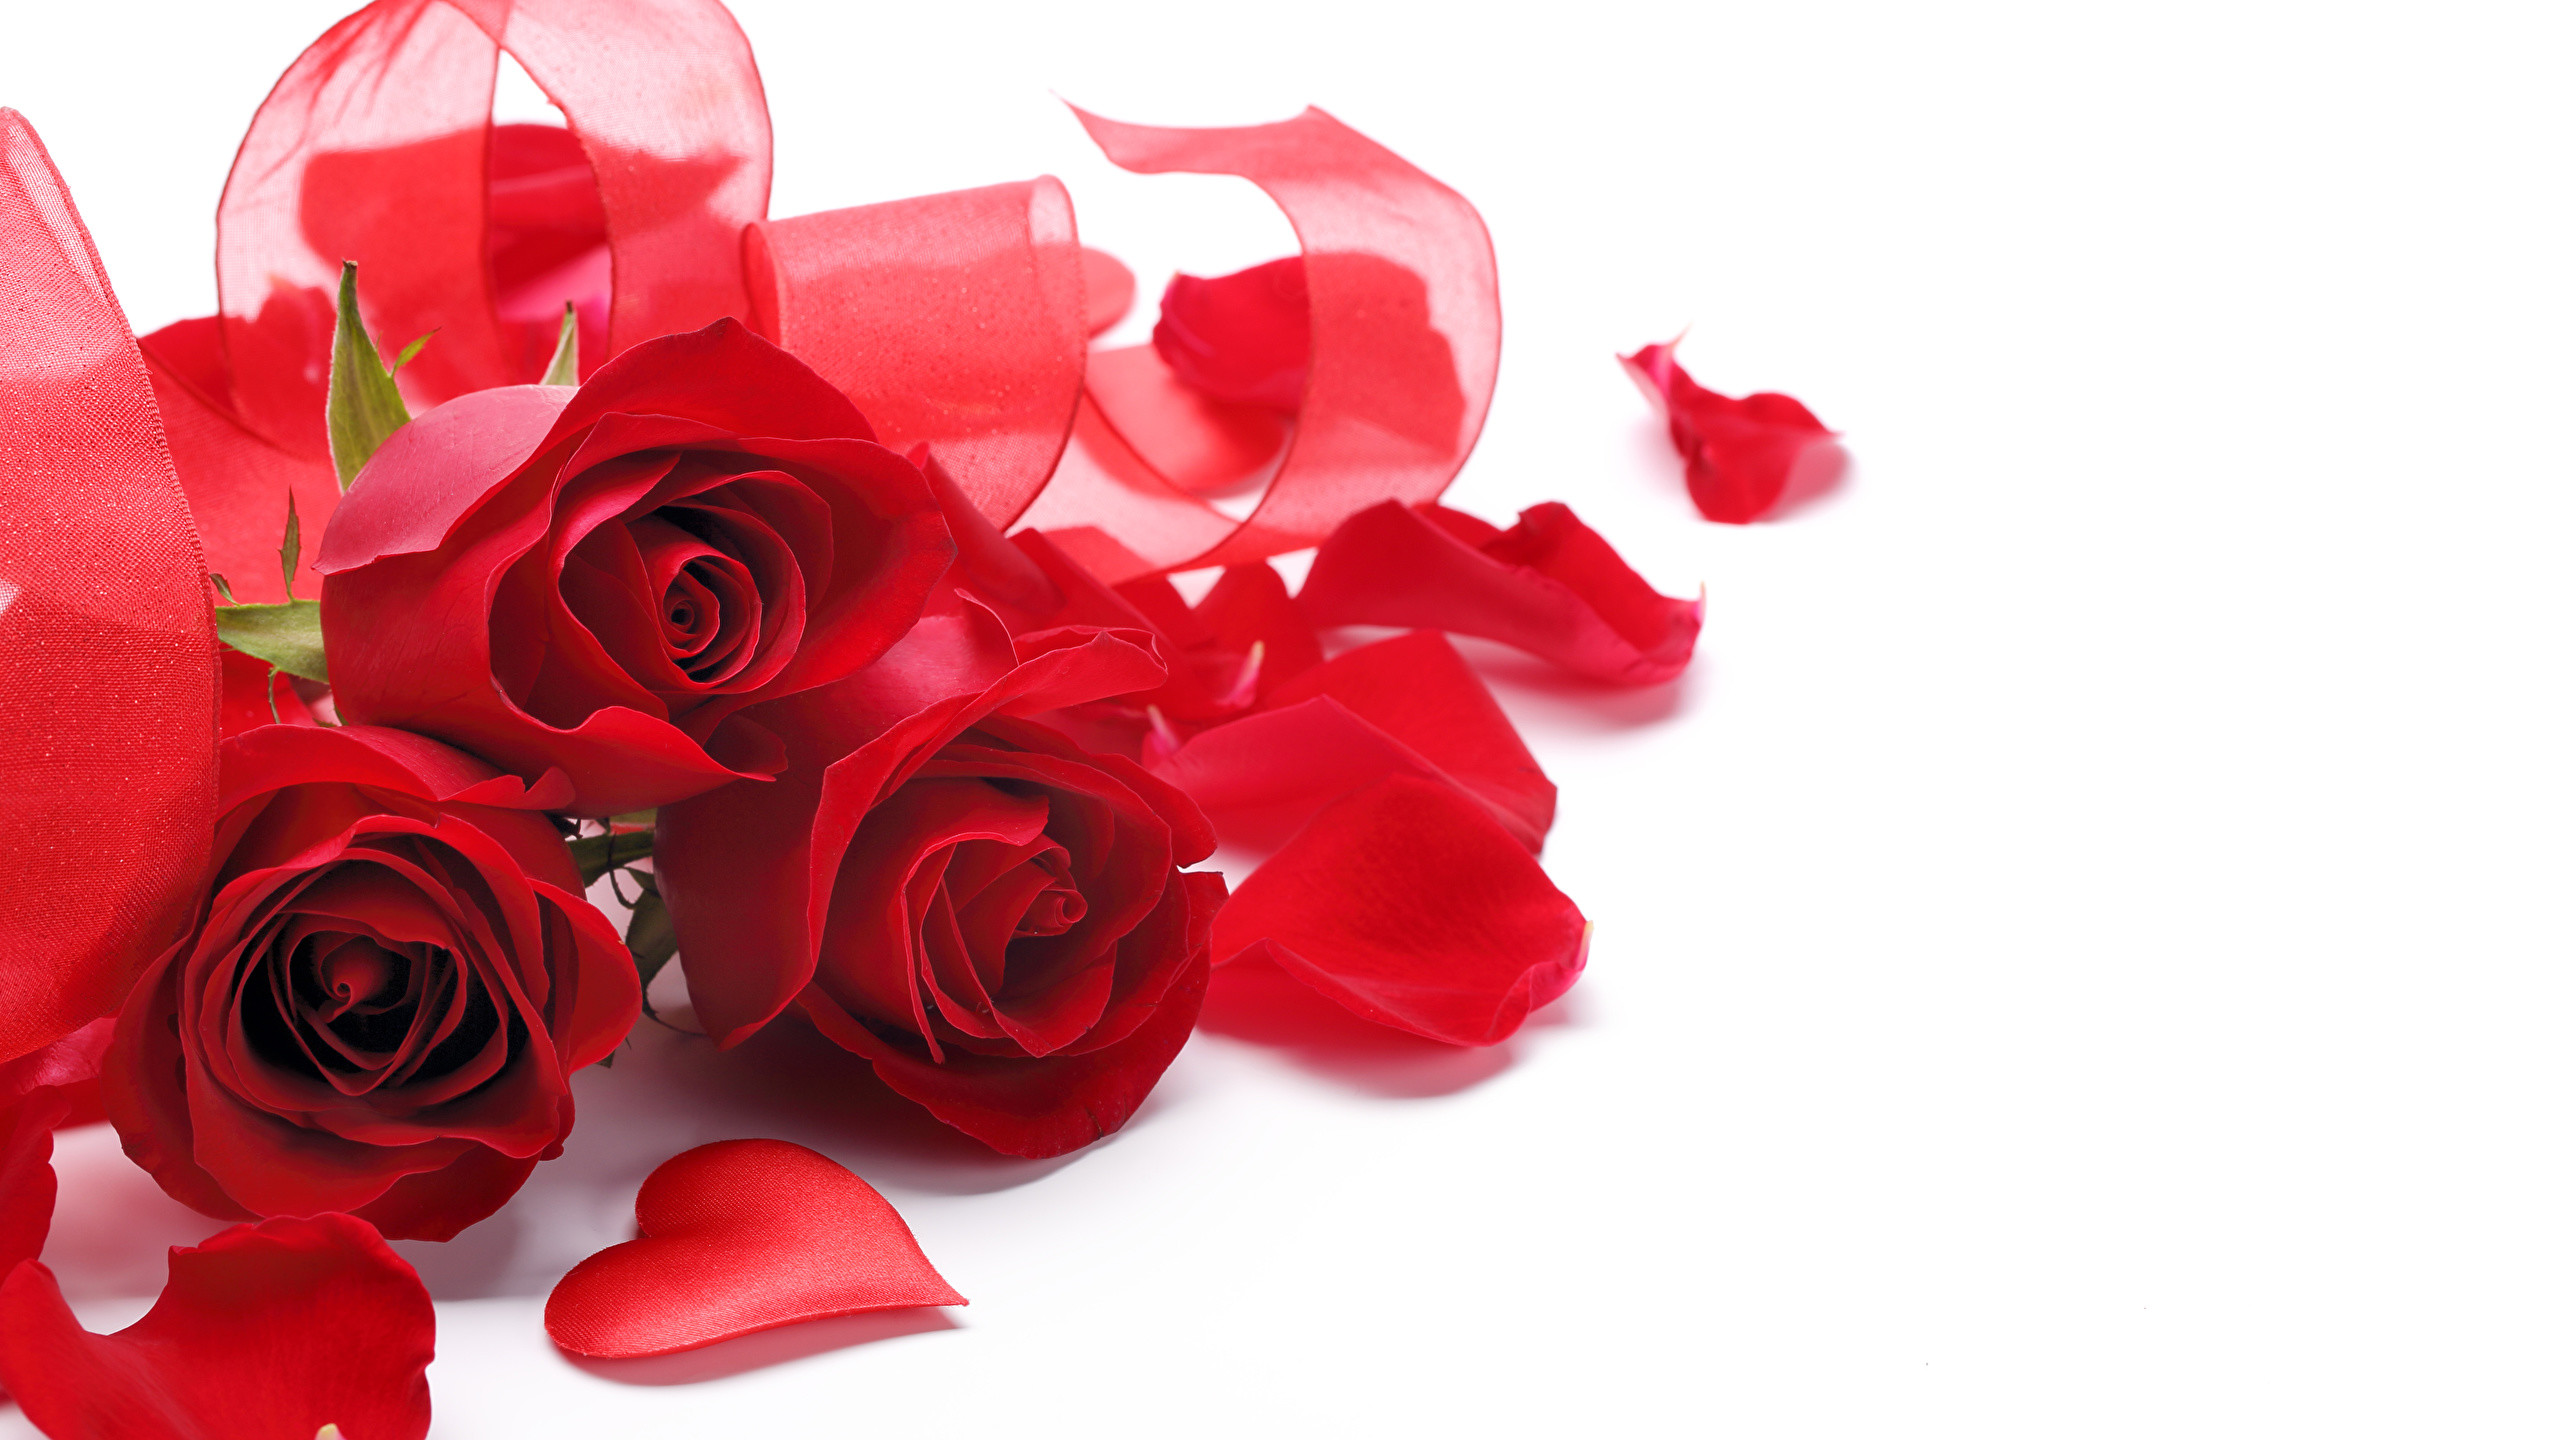 Pictures Heart Red Roses Petals Flowers Three 3 White background 2560×1440